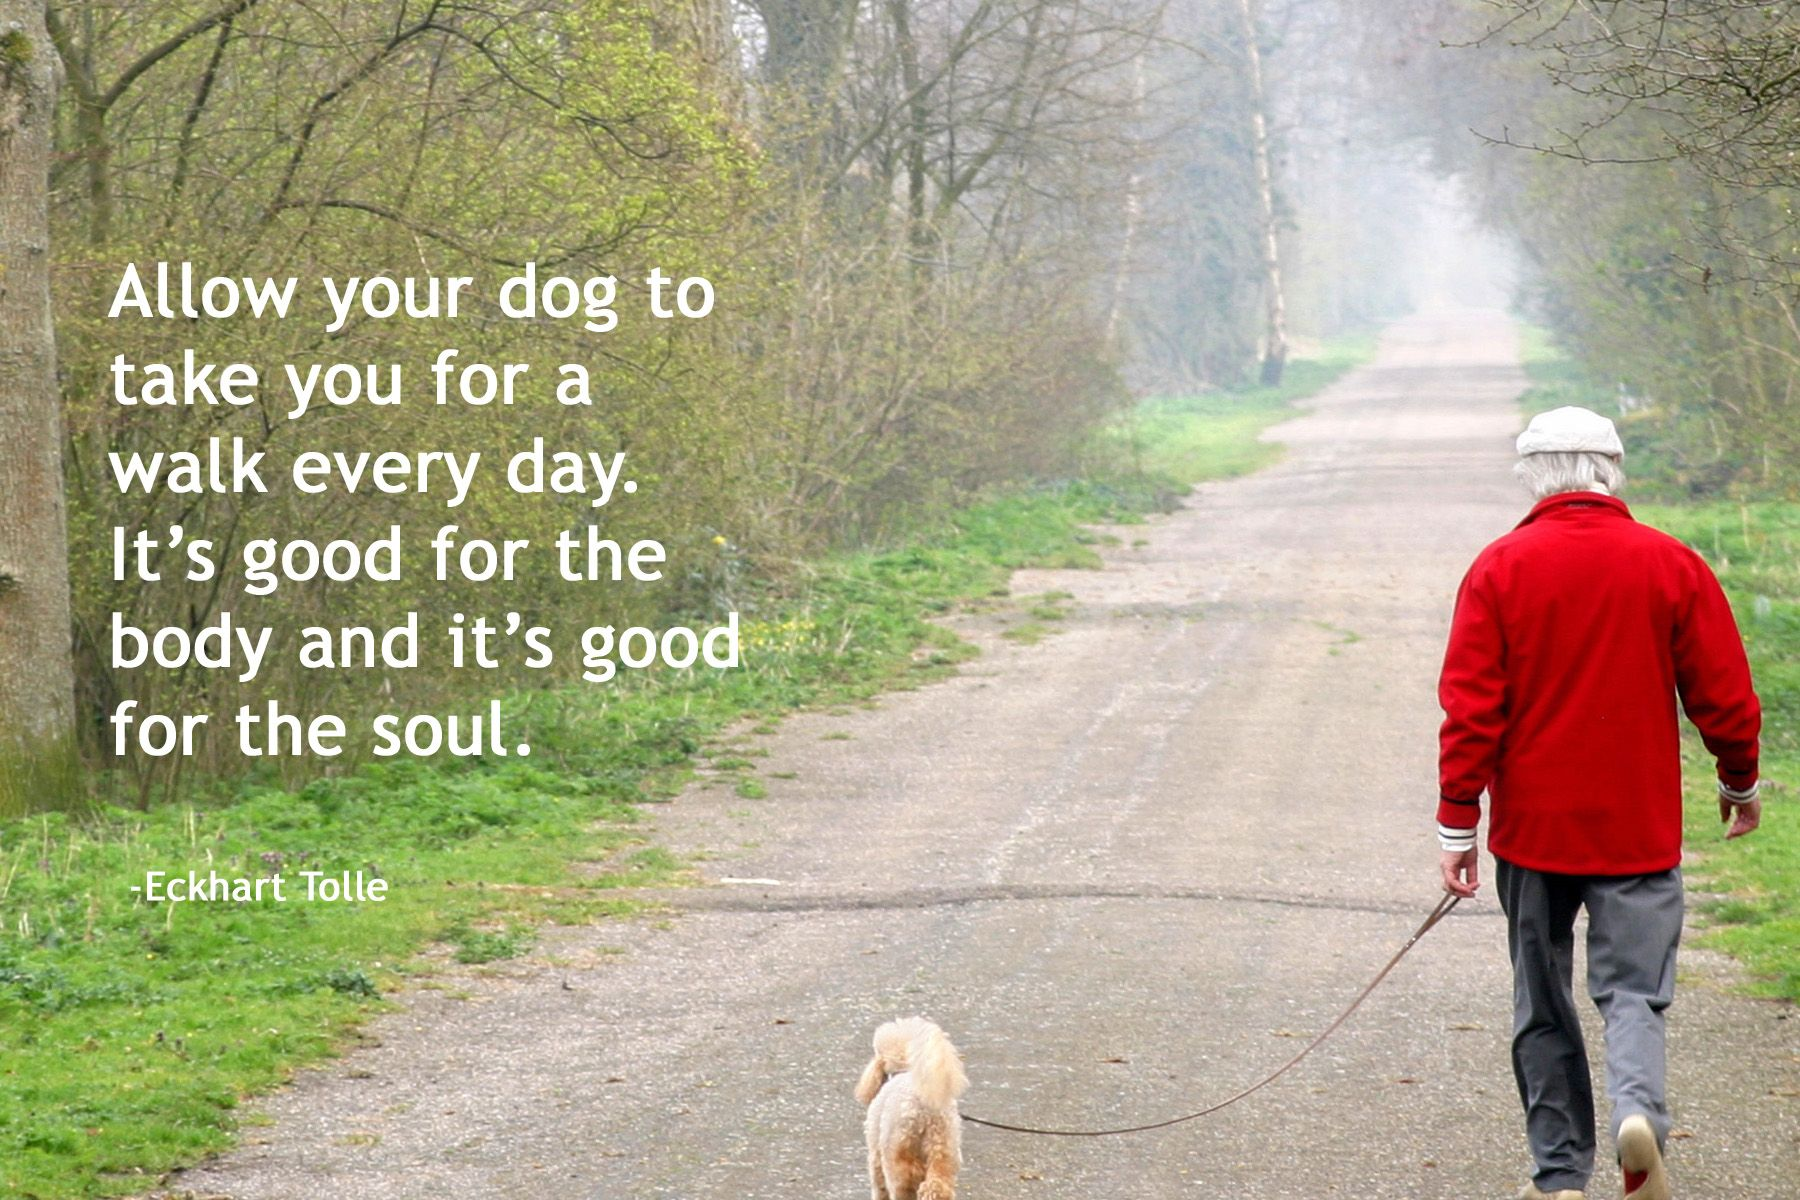 Allow Your Dog To Take You For A Walk Every Day It S Good For The Body And It S Good For The Soul Eckhart Tolle Dog Quotes Your Dog Dogs